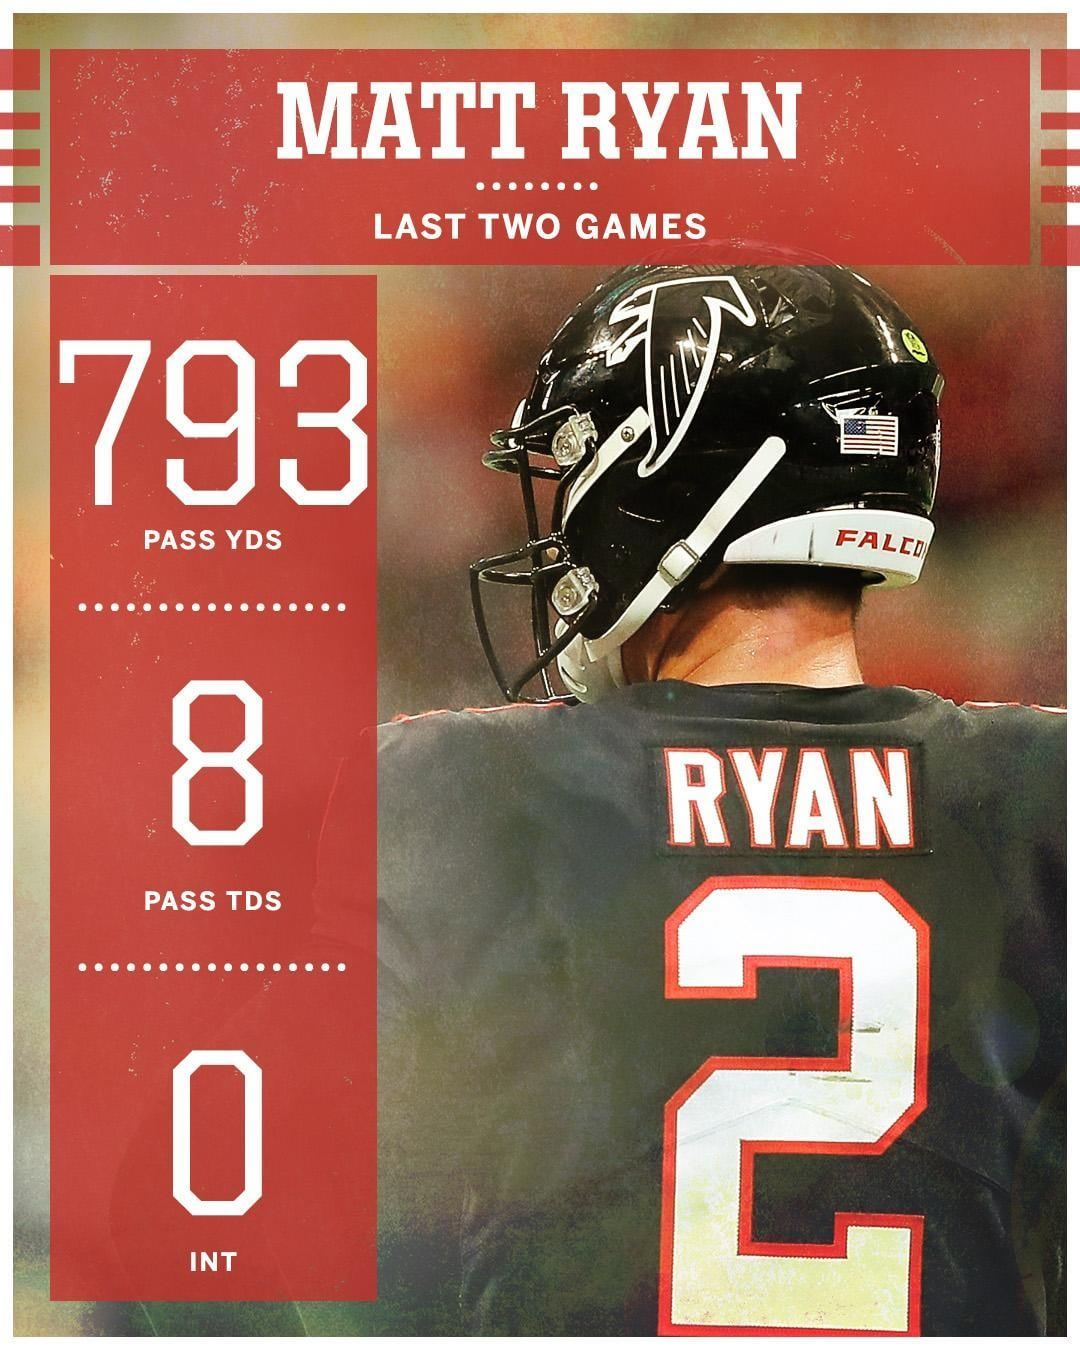 Nfl On Espn On Instagram Matt Ryan Is The First Player In Nfl History To Lose Back To Back Games With 350 Pass Yards 3 Nfl History Matt Ryan Football Funny